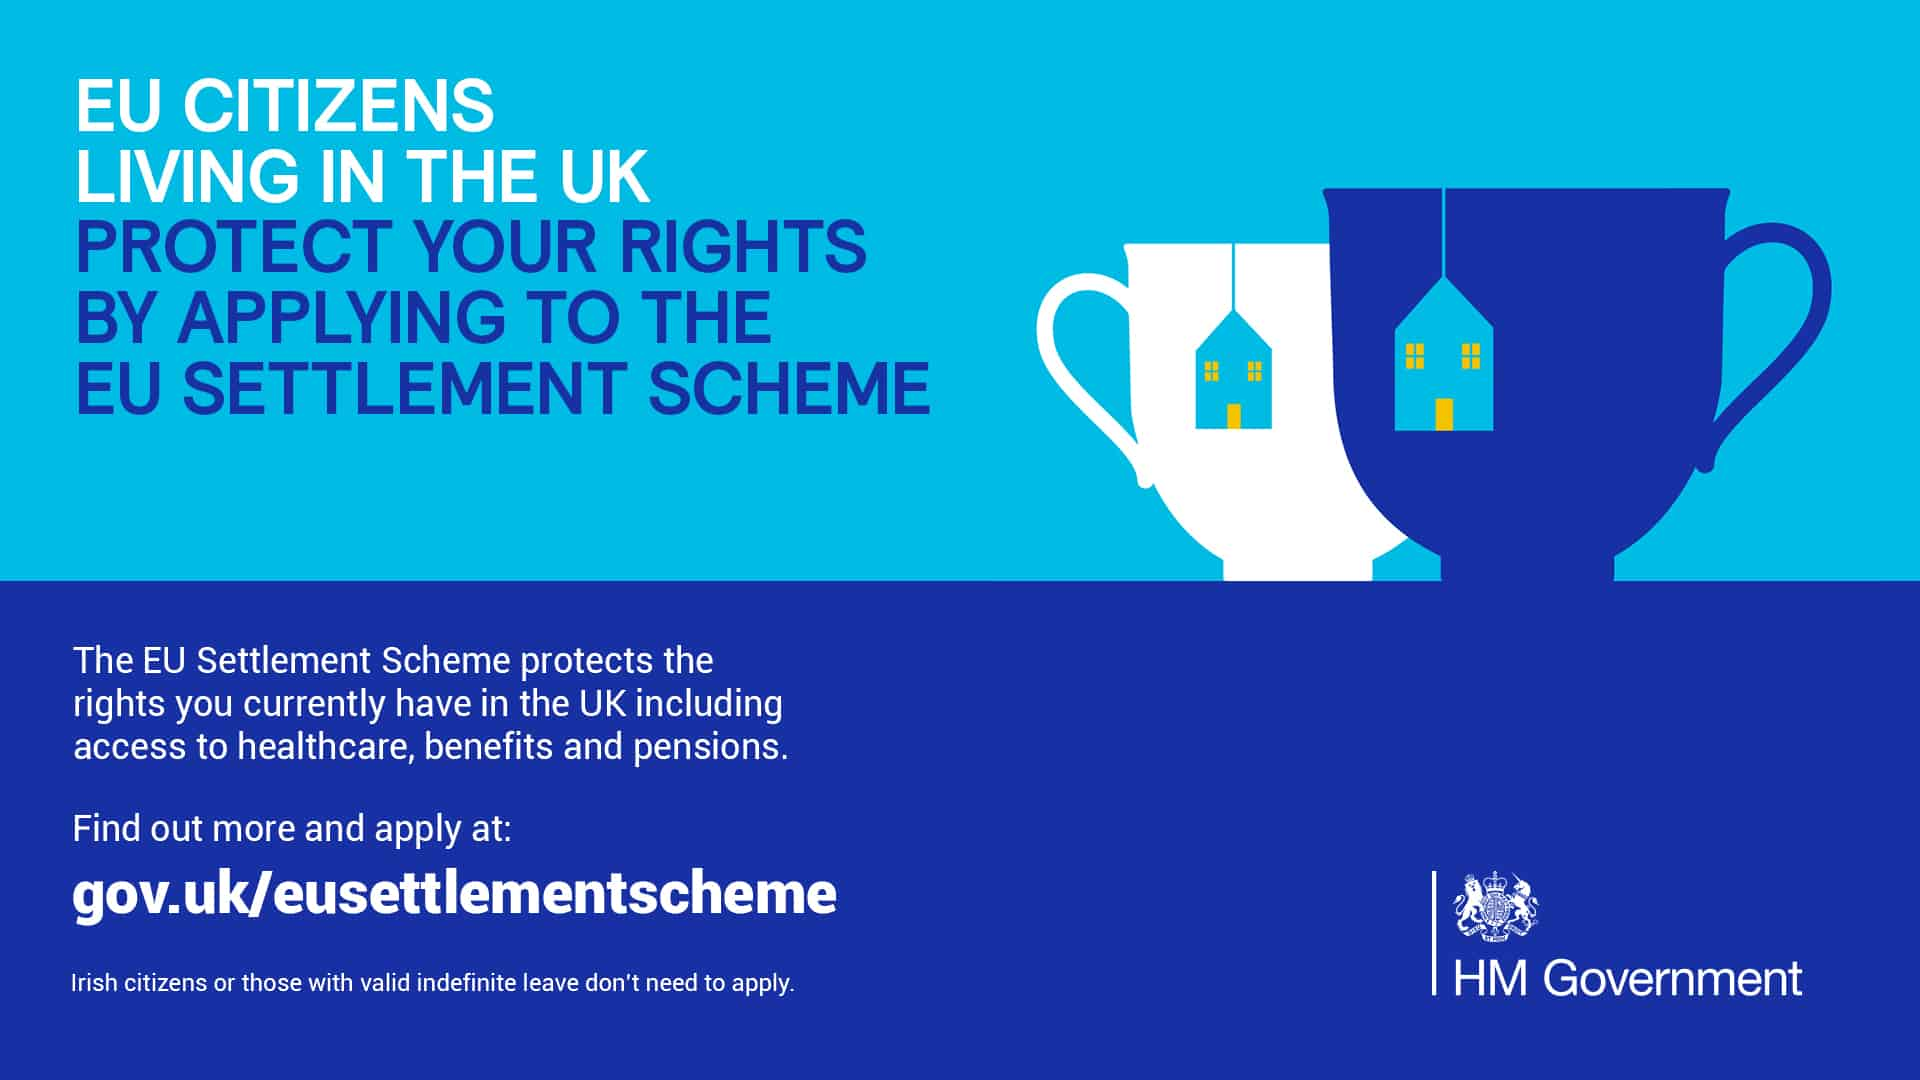 EU citizens living in the UK - protect your rights by applying to the EU settlement scheme